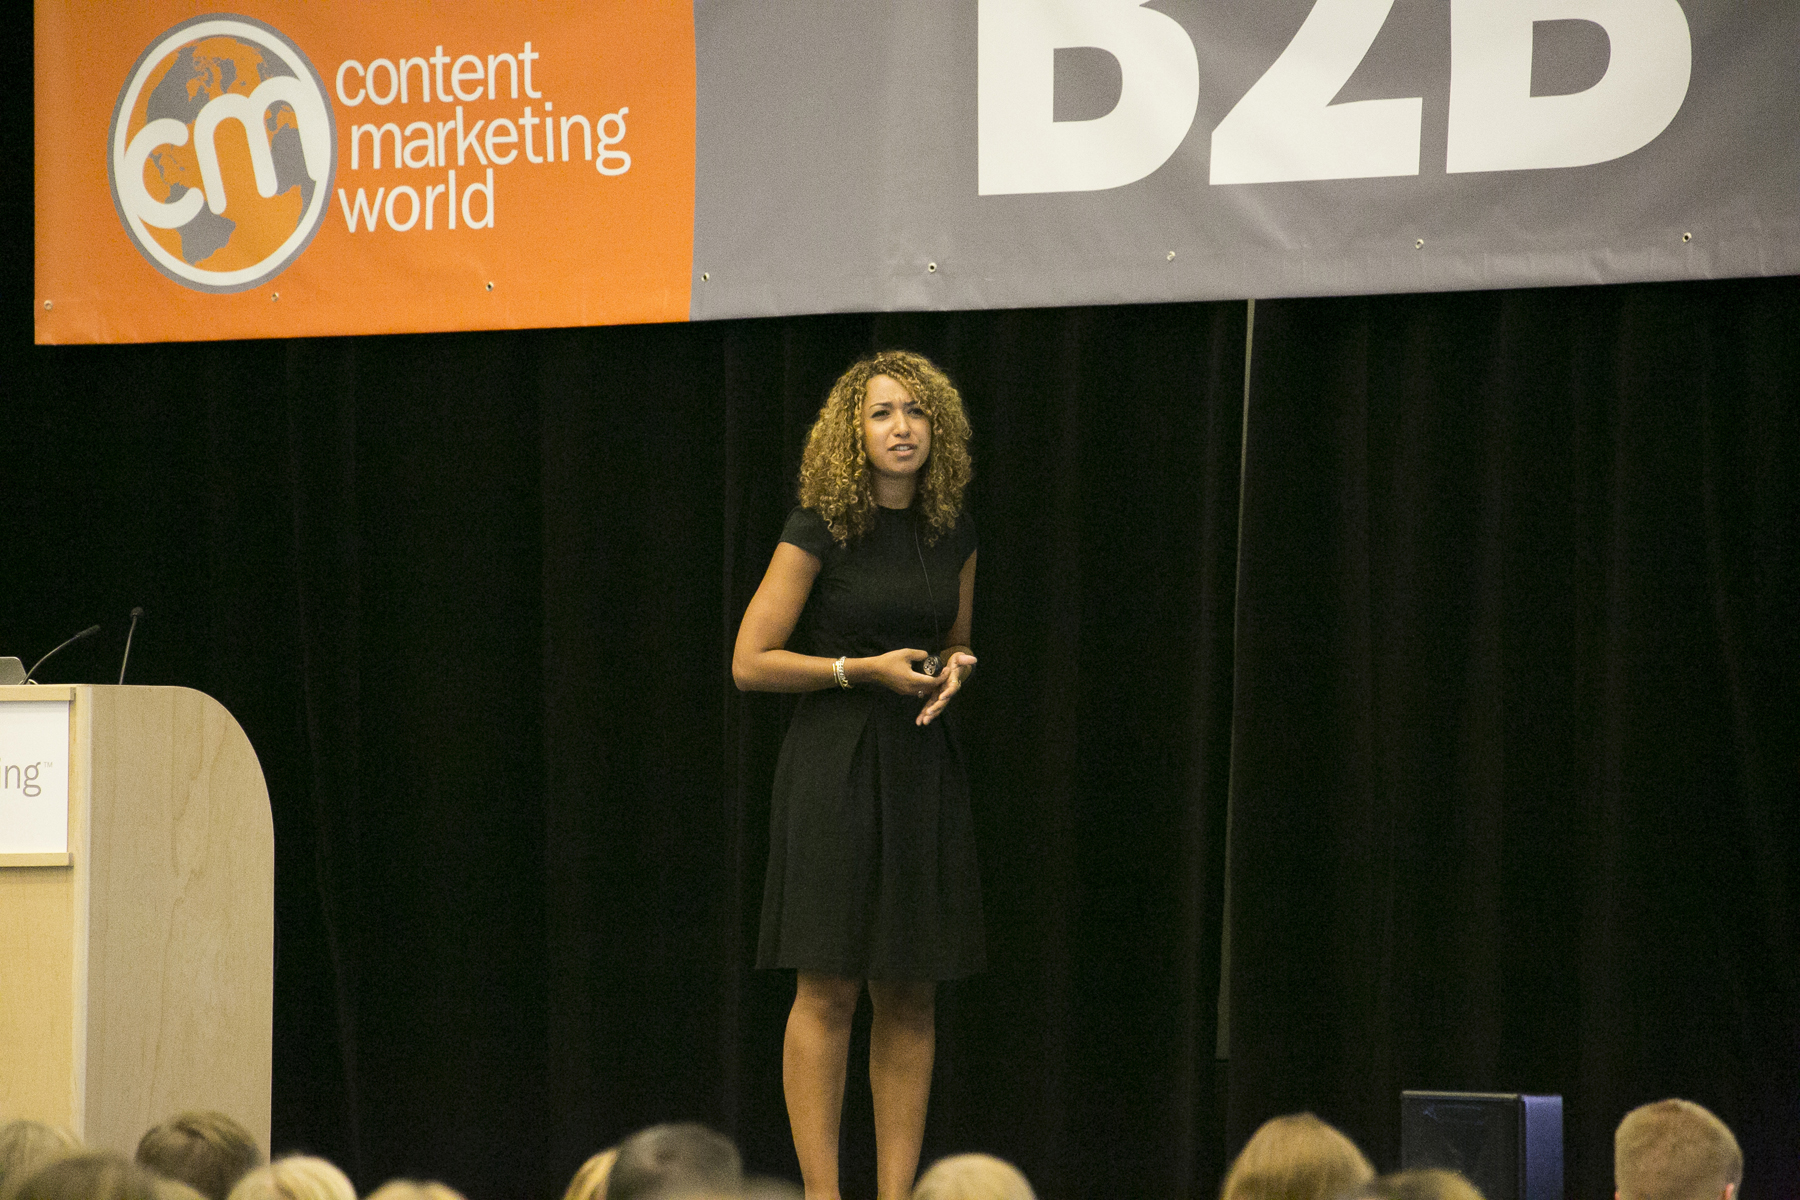 Katrina Craigwell: How GE Determines What Channels Make the Most Impact [#CMWorld Recap]